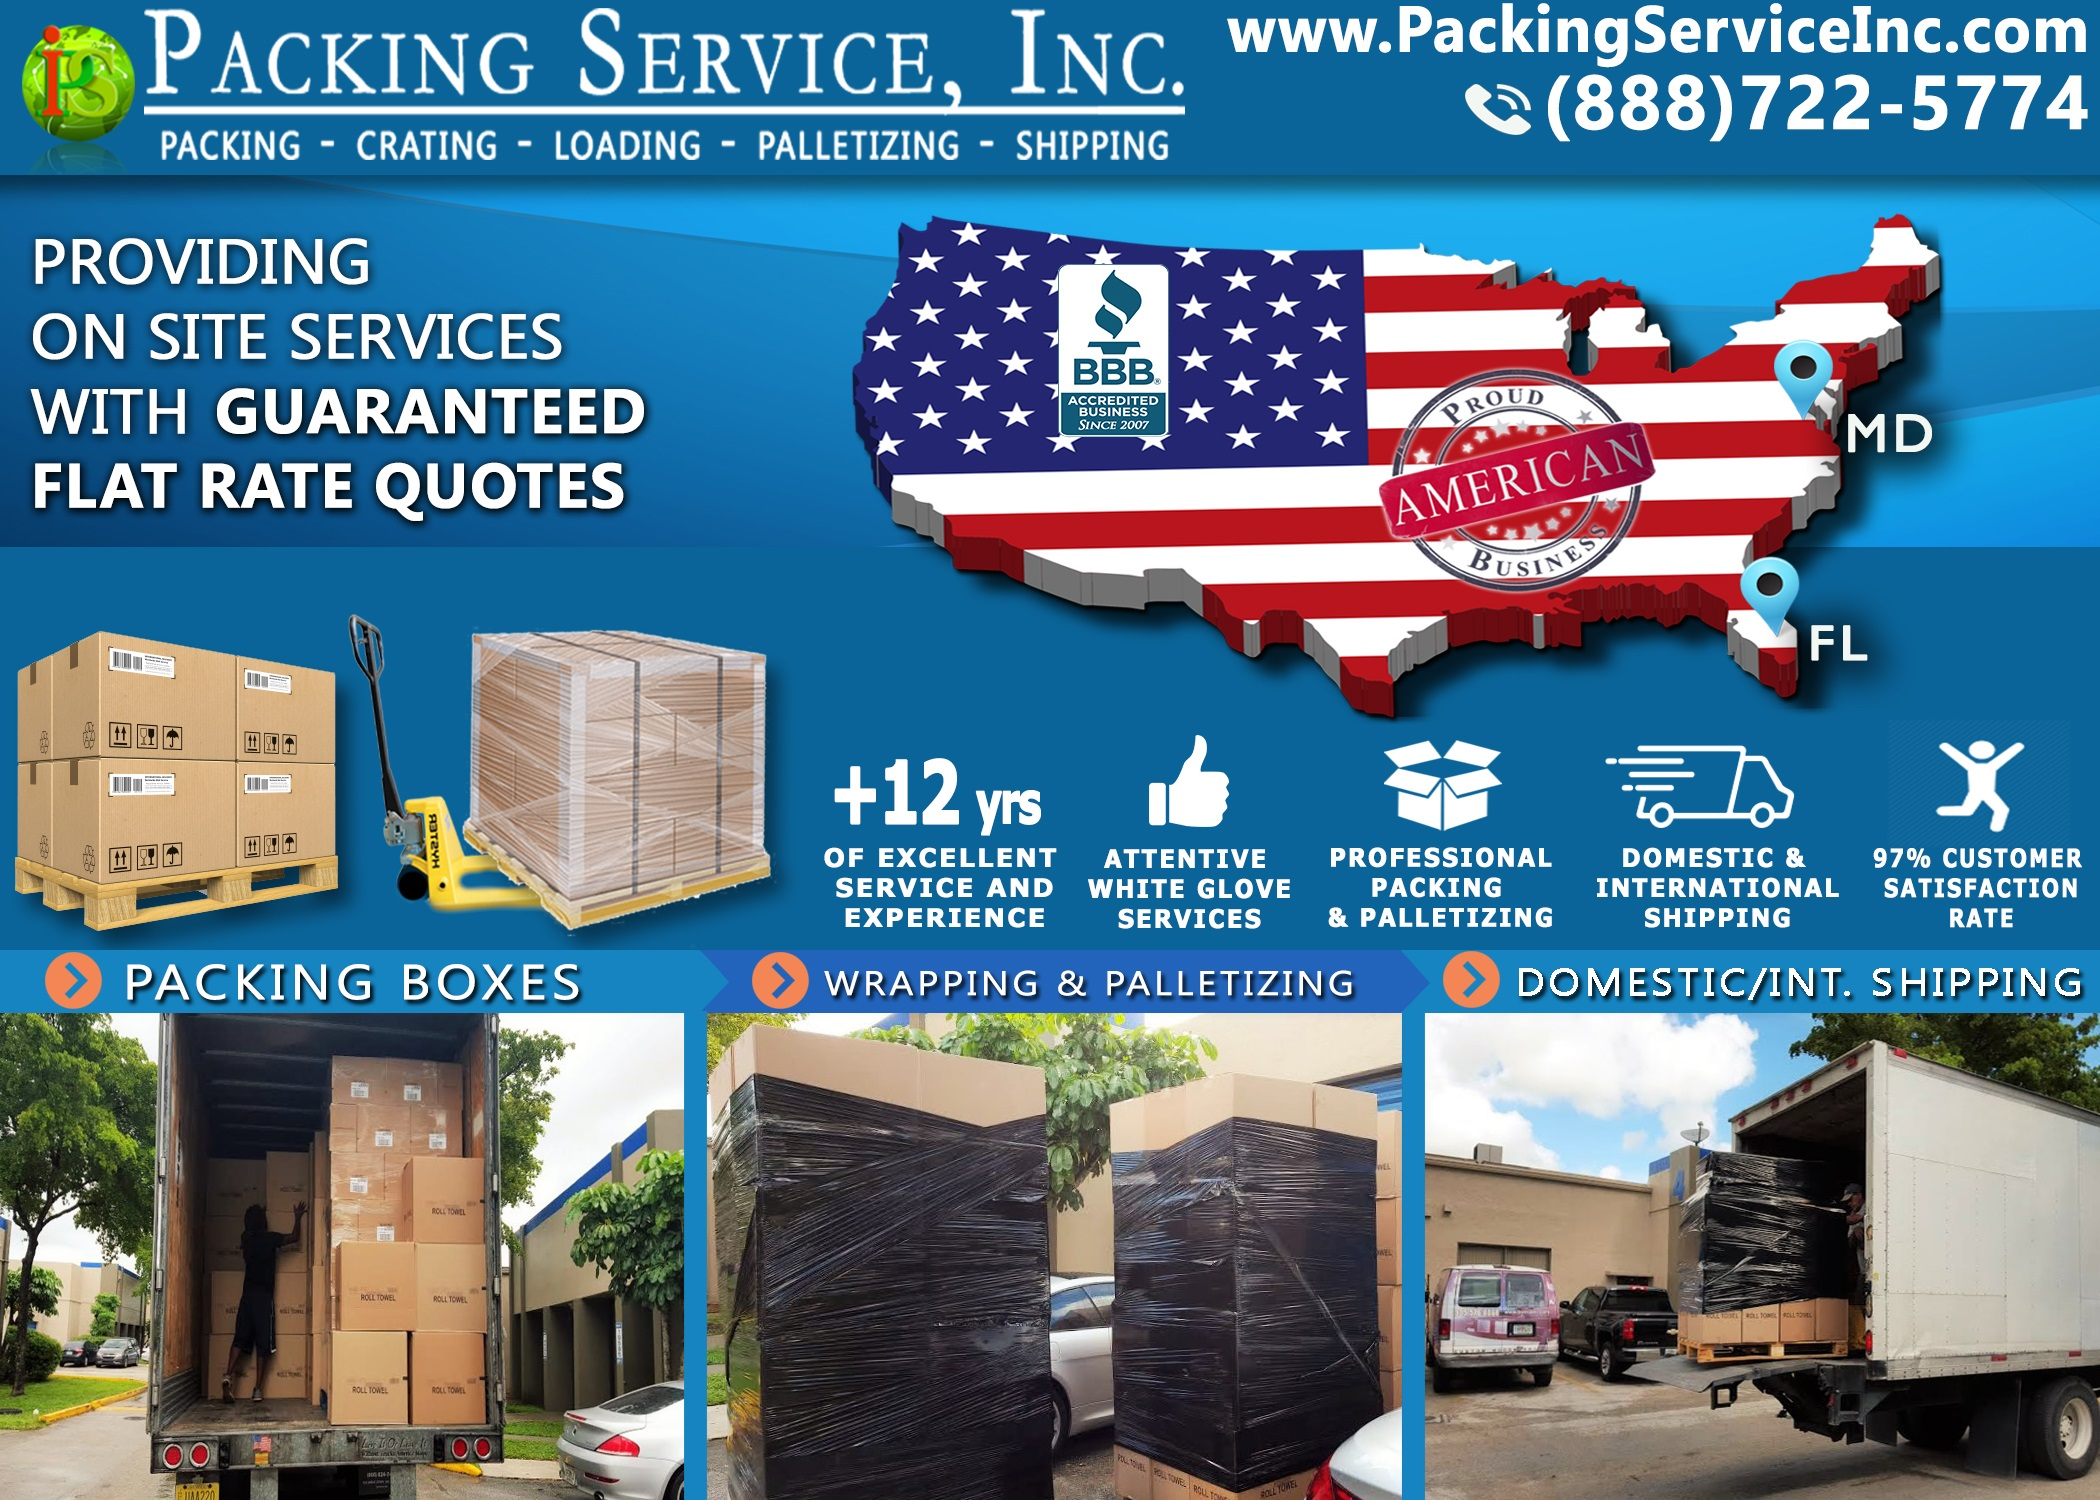 Packing boxes, Palletizing and Shipping from Miami, FL to Maryland with Packing Service, Inc. - 894